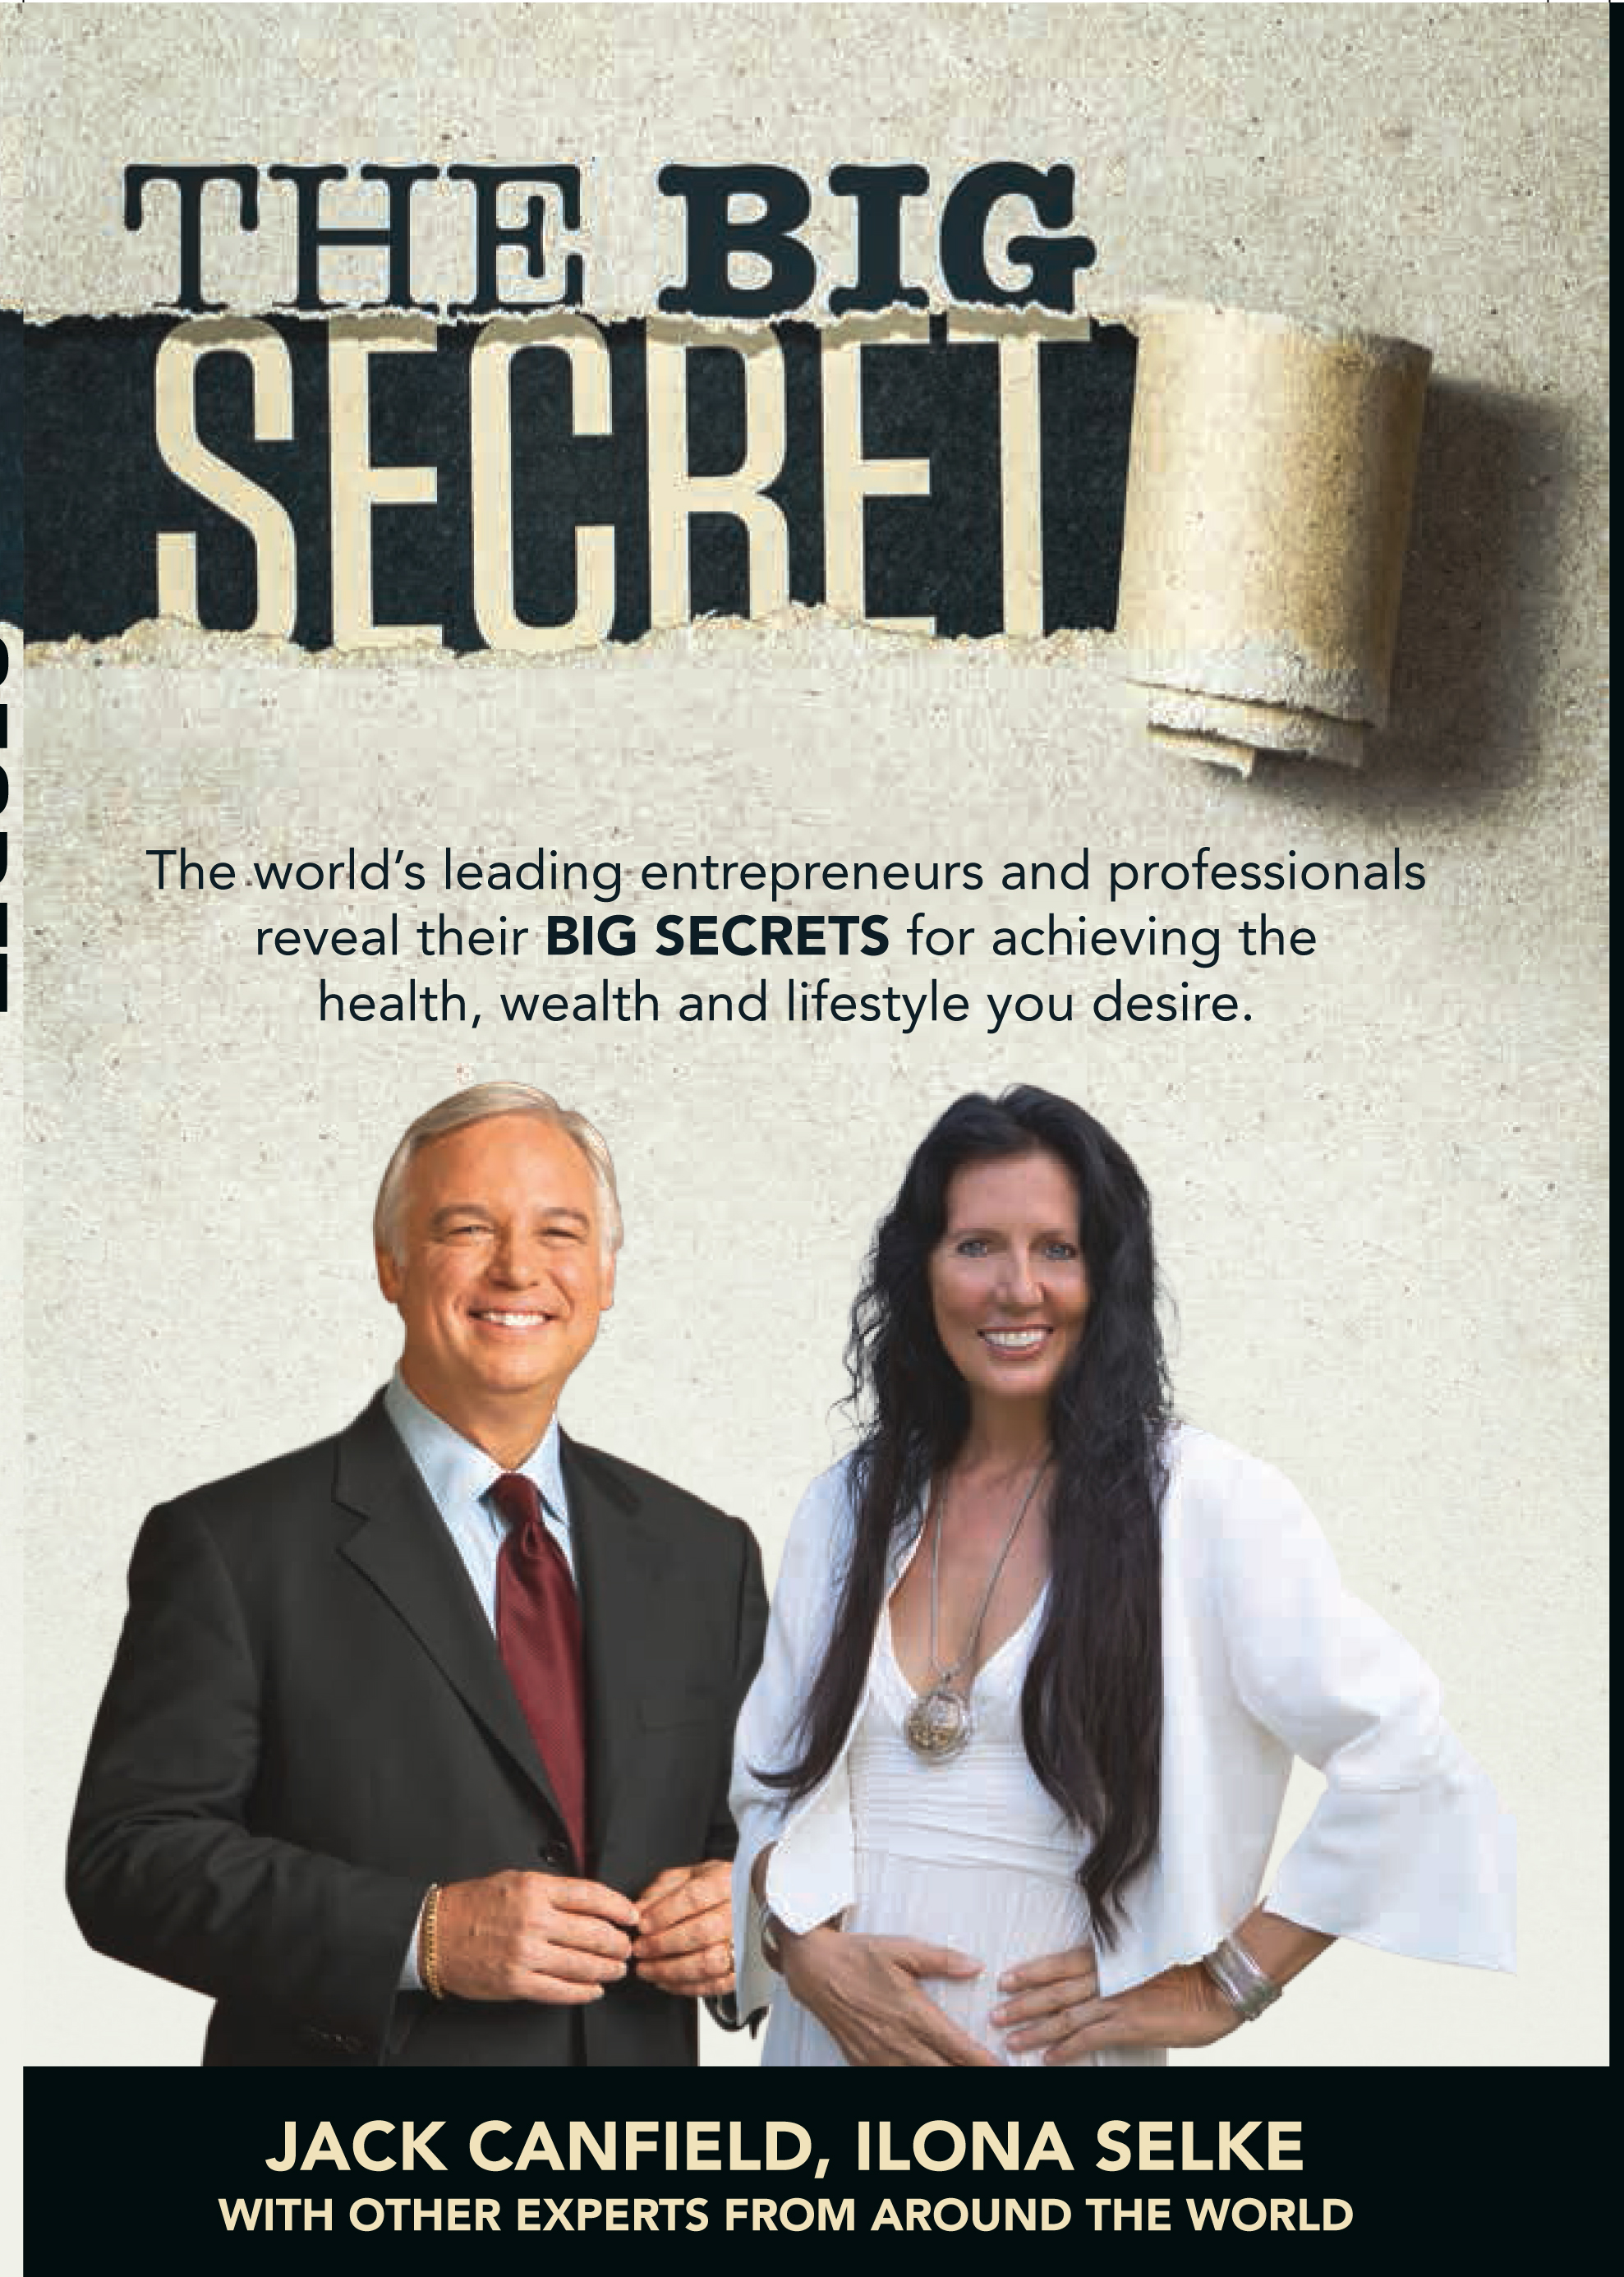 JACK CANFIELD BOOK COVER